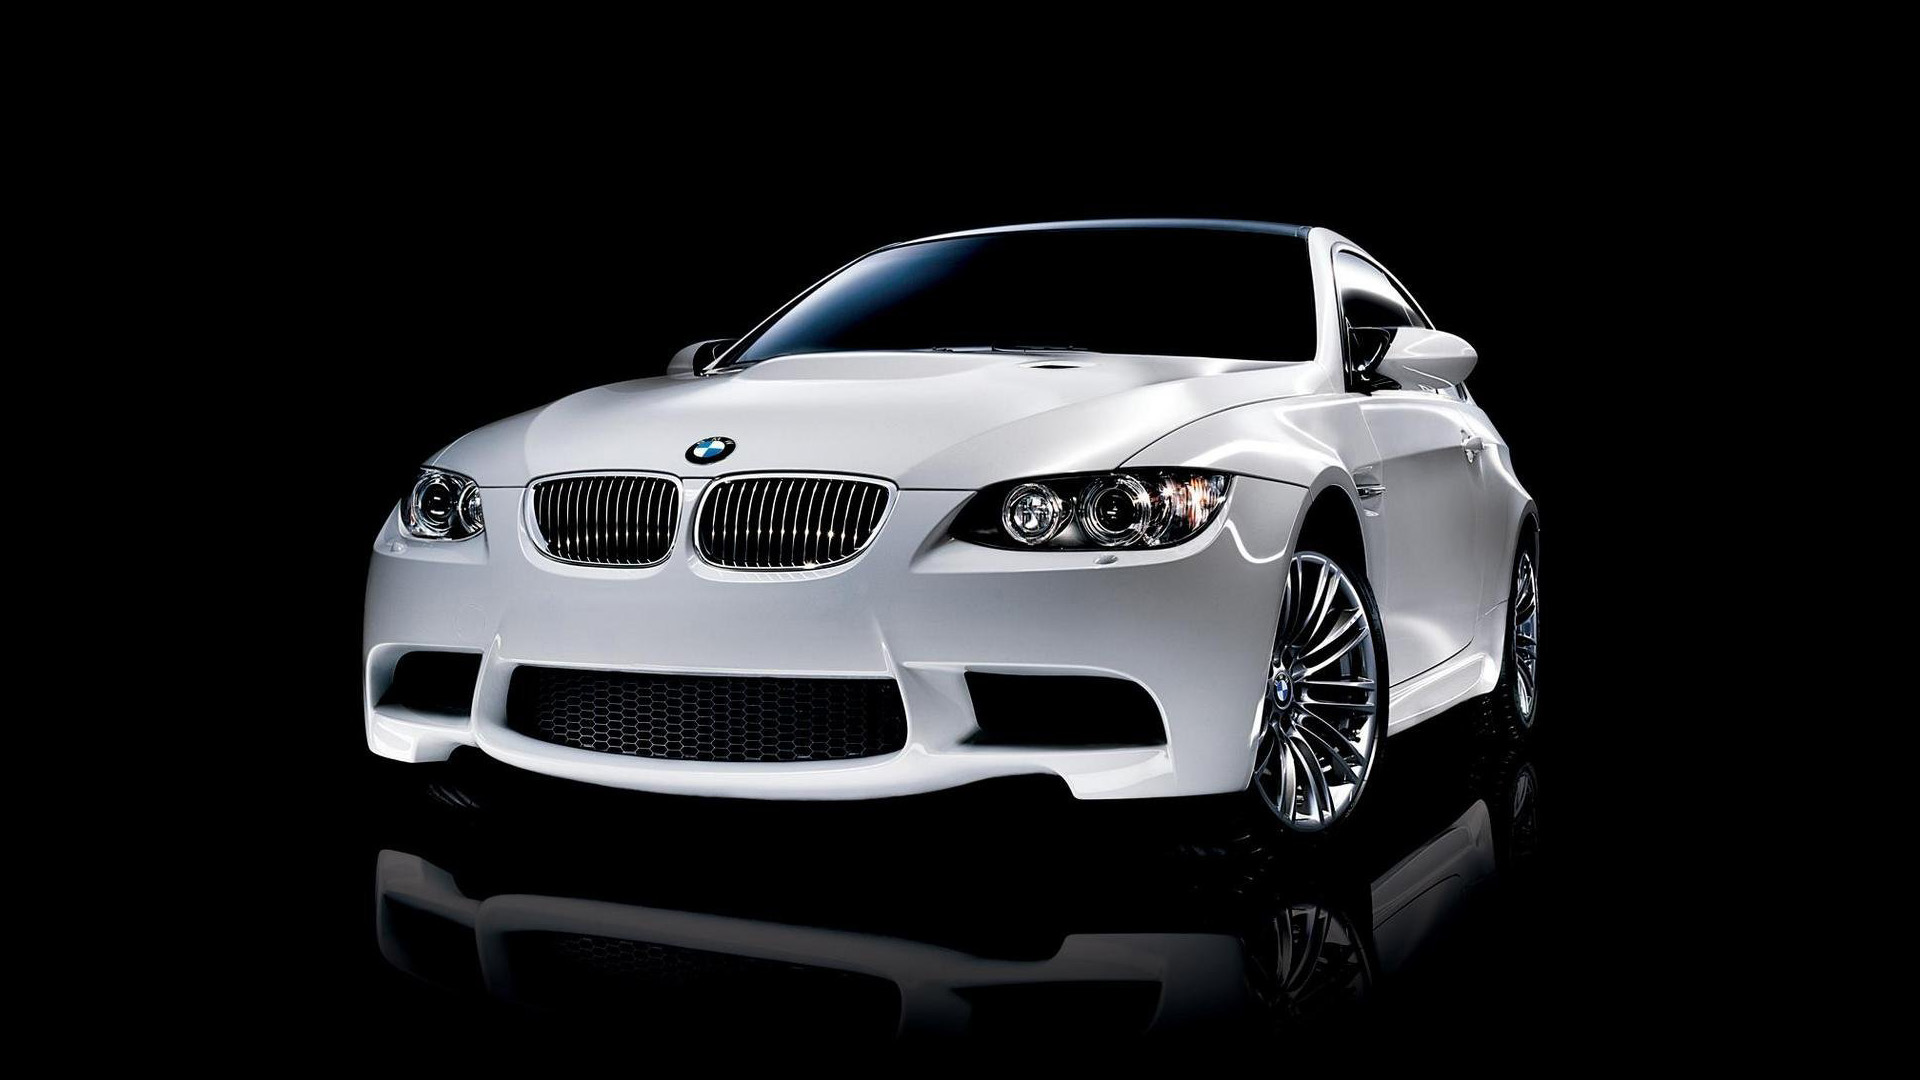 BMW m3 Car HD Wallpaper 1080p